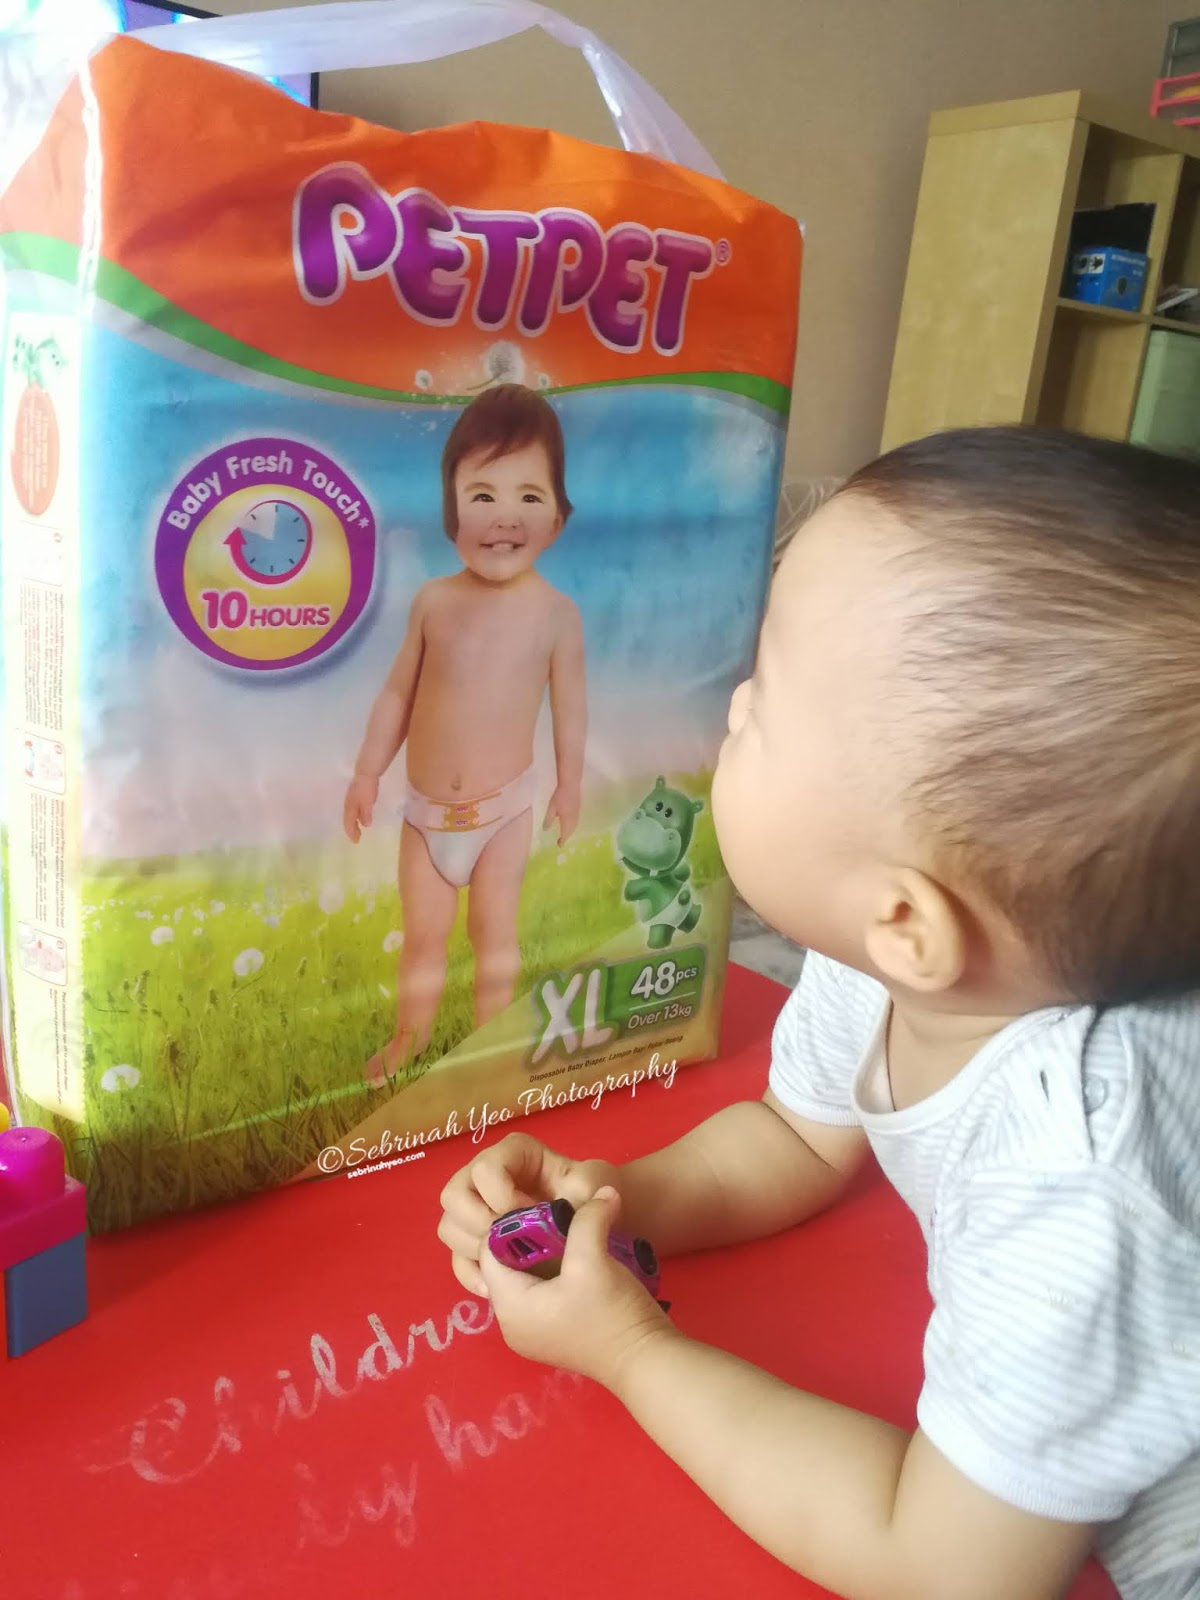 PETPET New Improved Diaper Review - Sebrinah Yeo